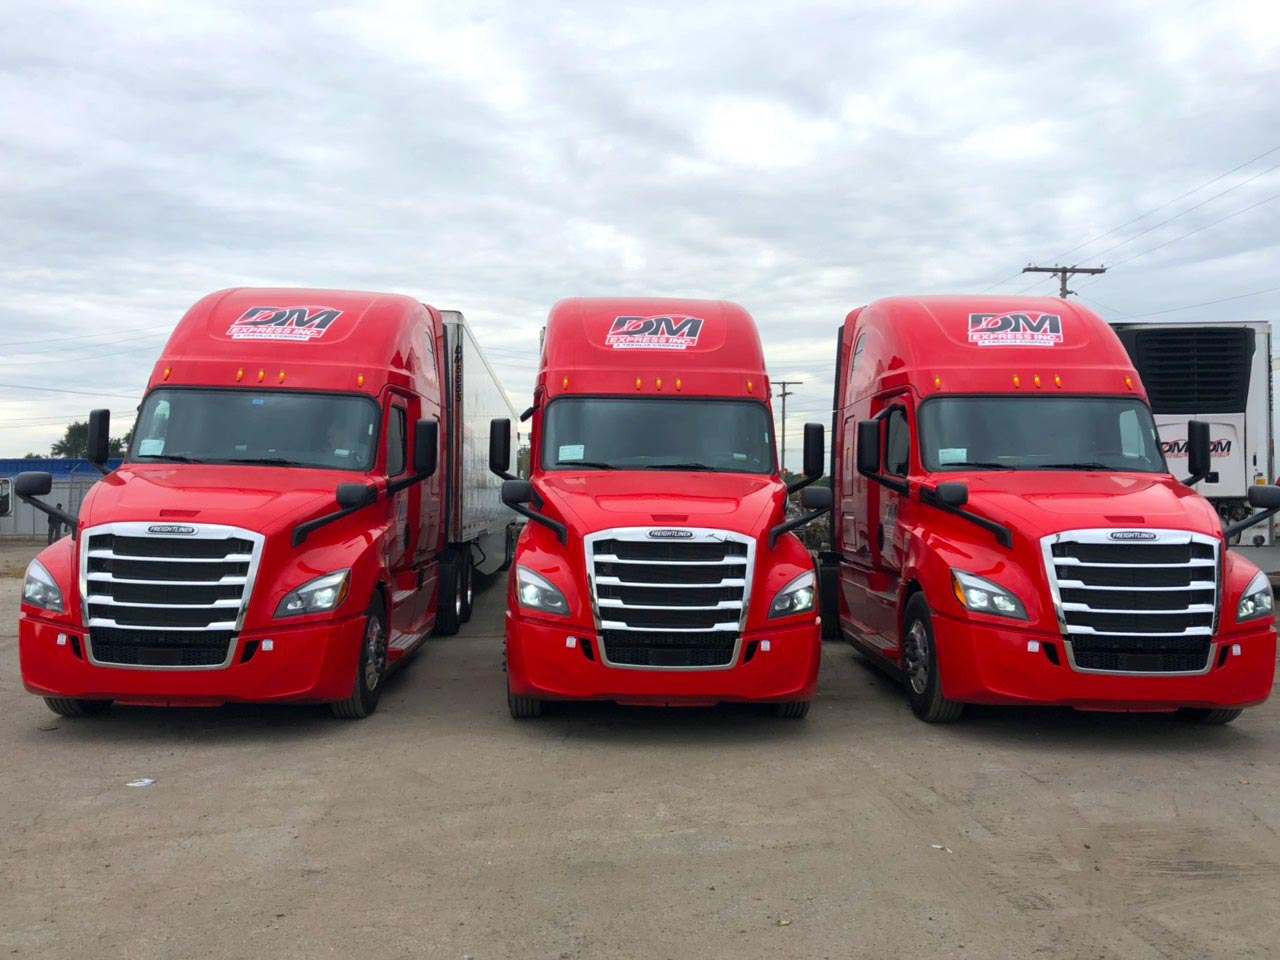 DM Express Red Trucks Fleet